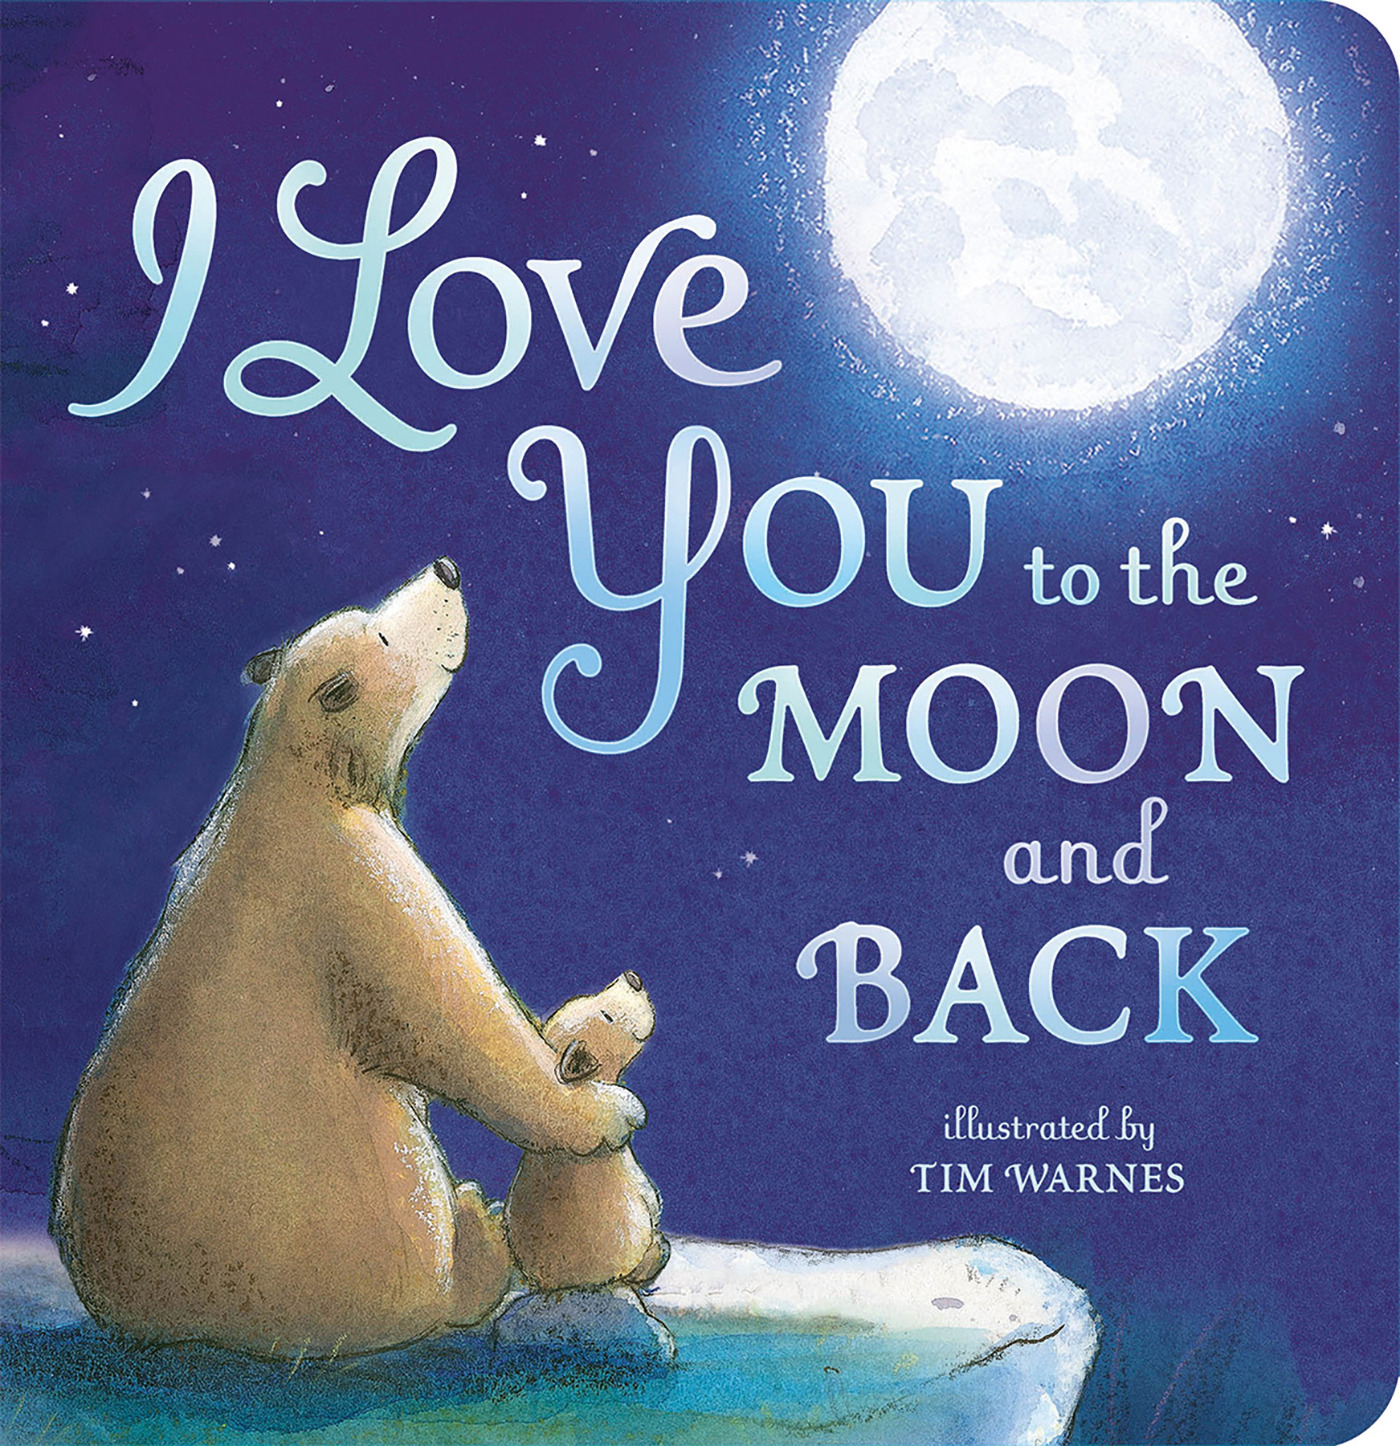 I Love You to the Moon and Back Only $5.00 (Reg $7.99) + Free Store Pickup at Walmart.com!